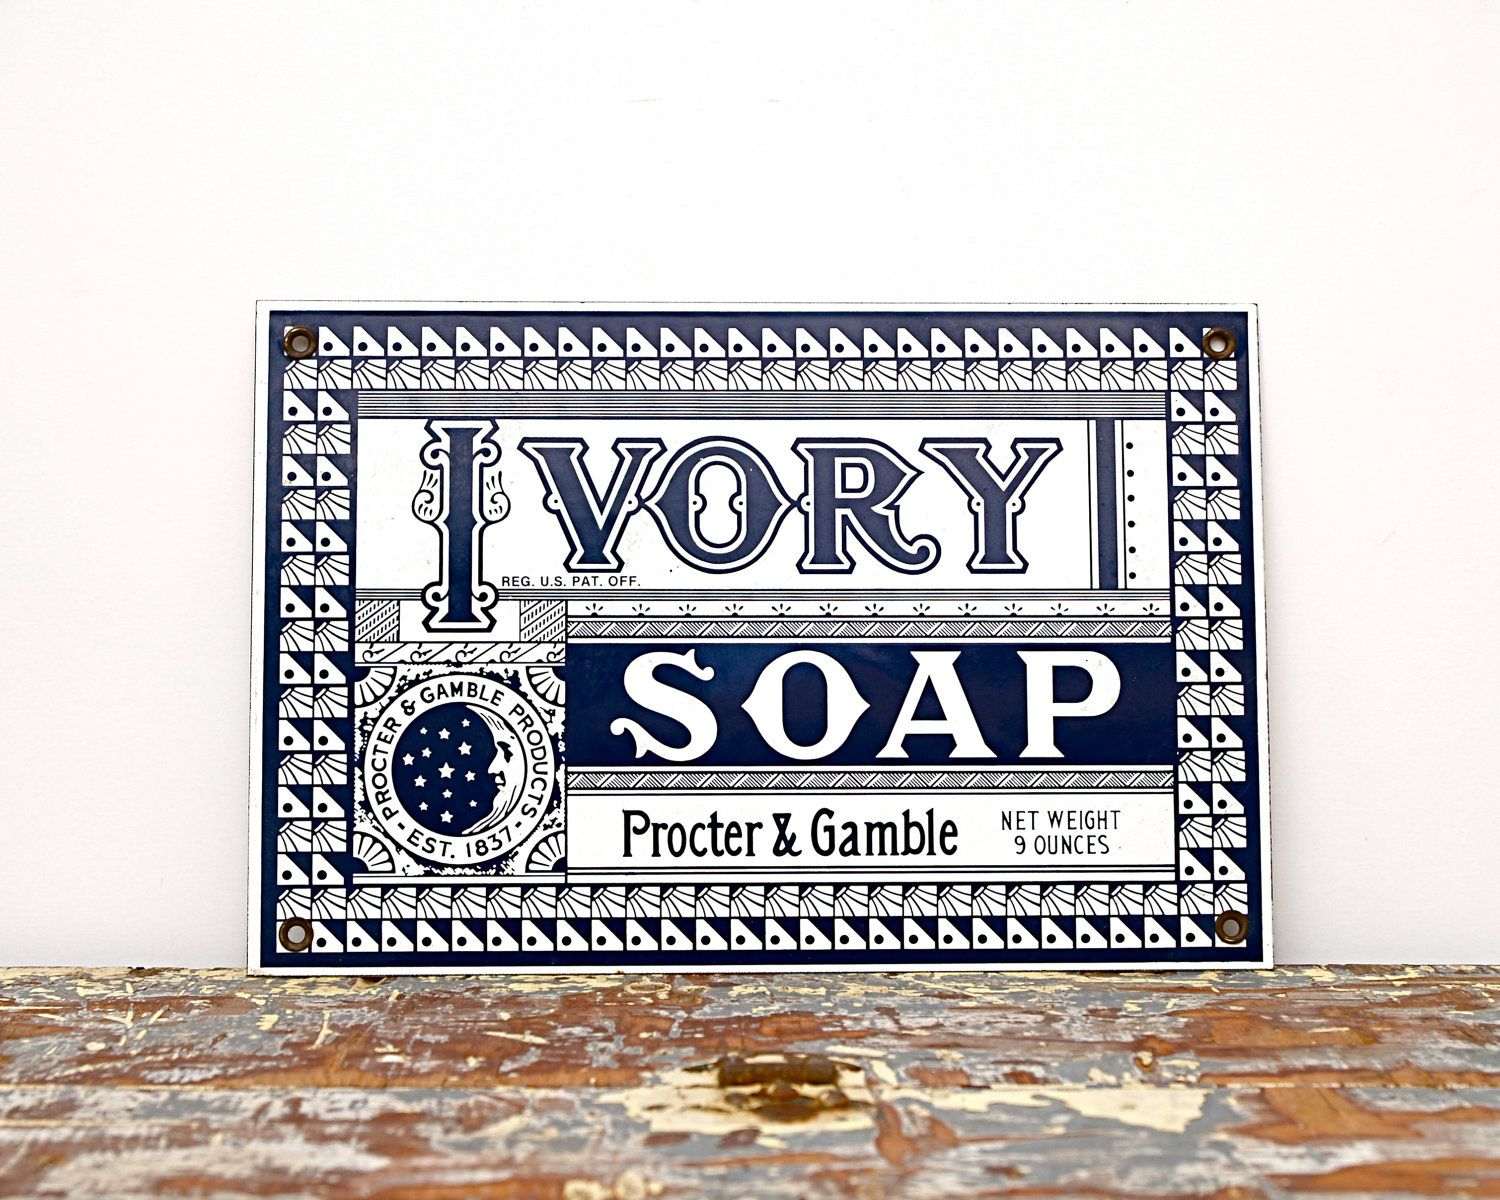 Vintage bathroom wall art - Vintage Advertising Sign Ivory Soap Shop Ad Sign Black And White Kitchen Home Decor Bathroom Wall Art Old Advert